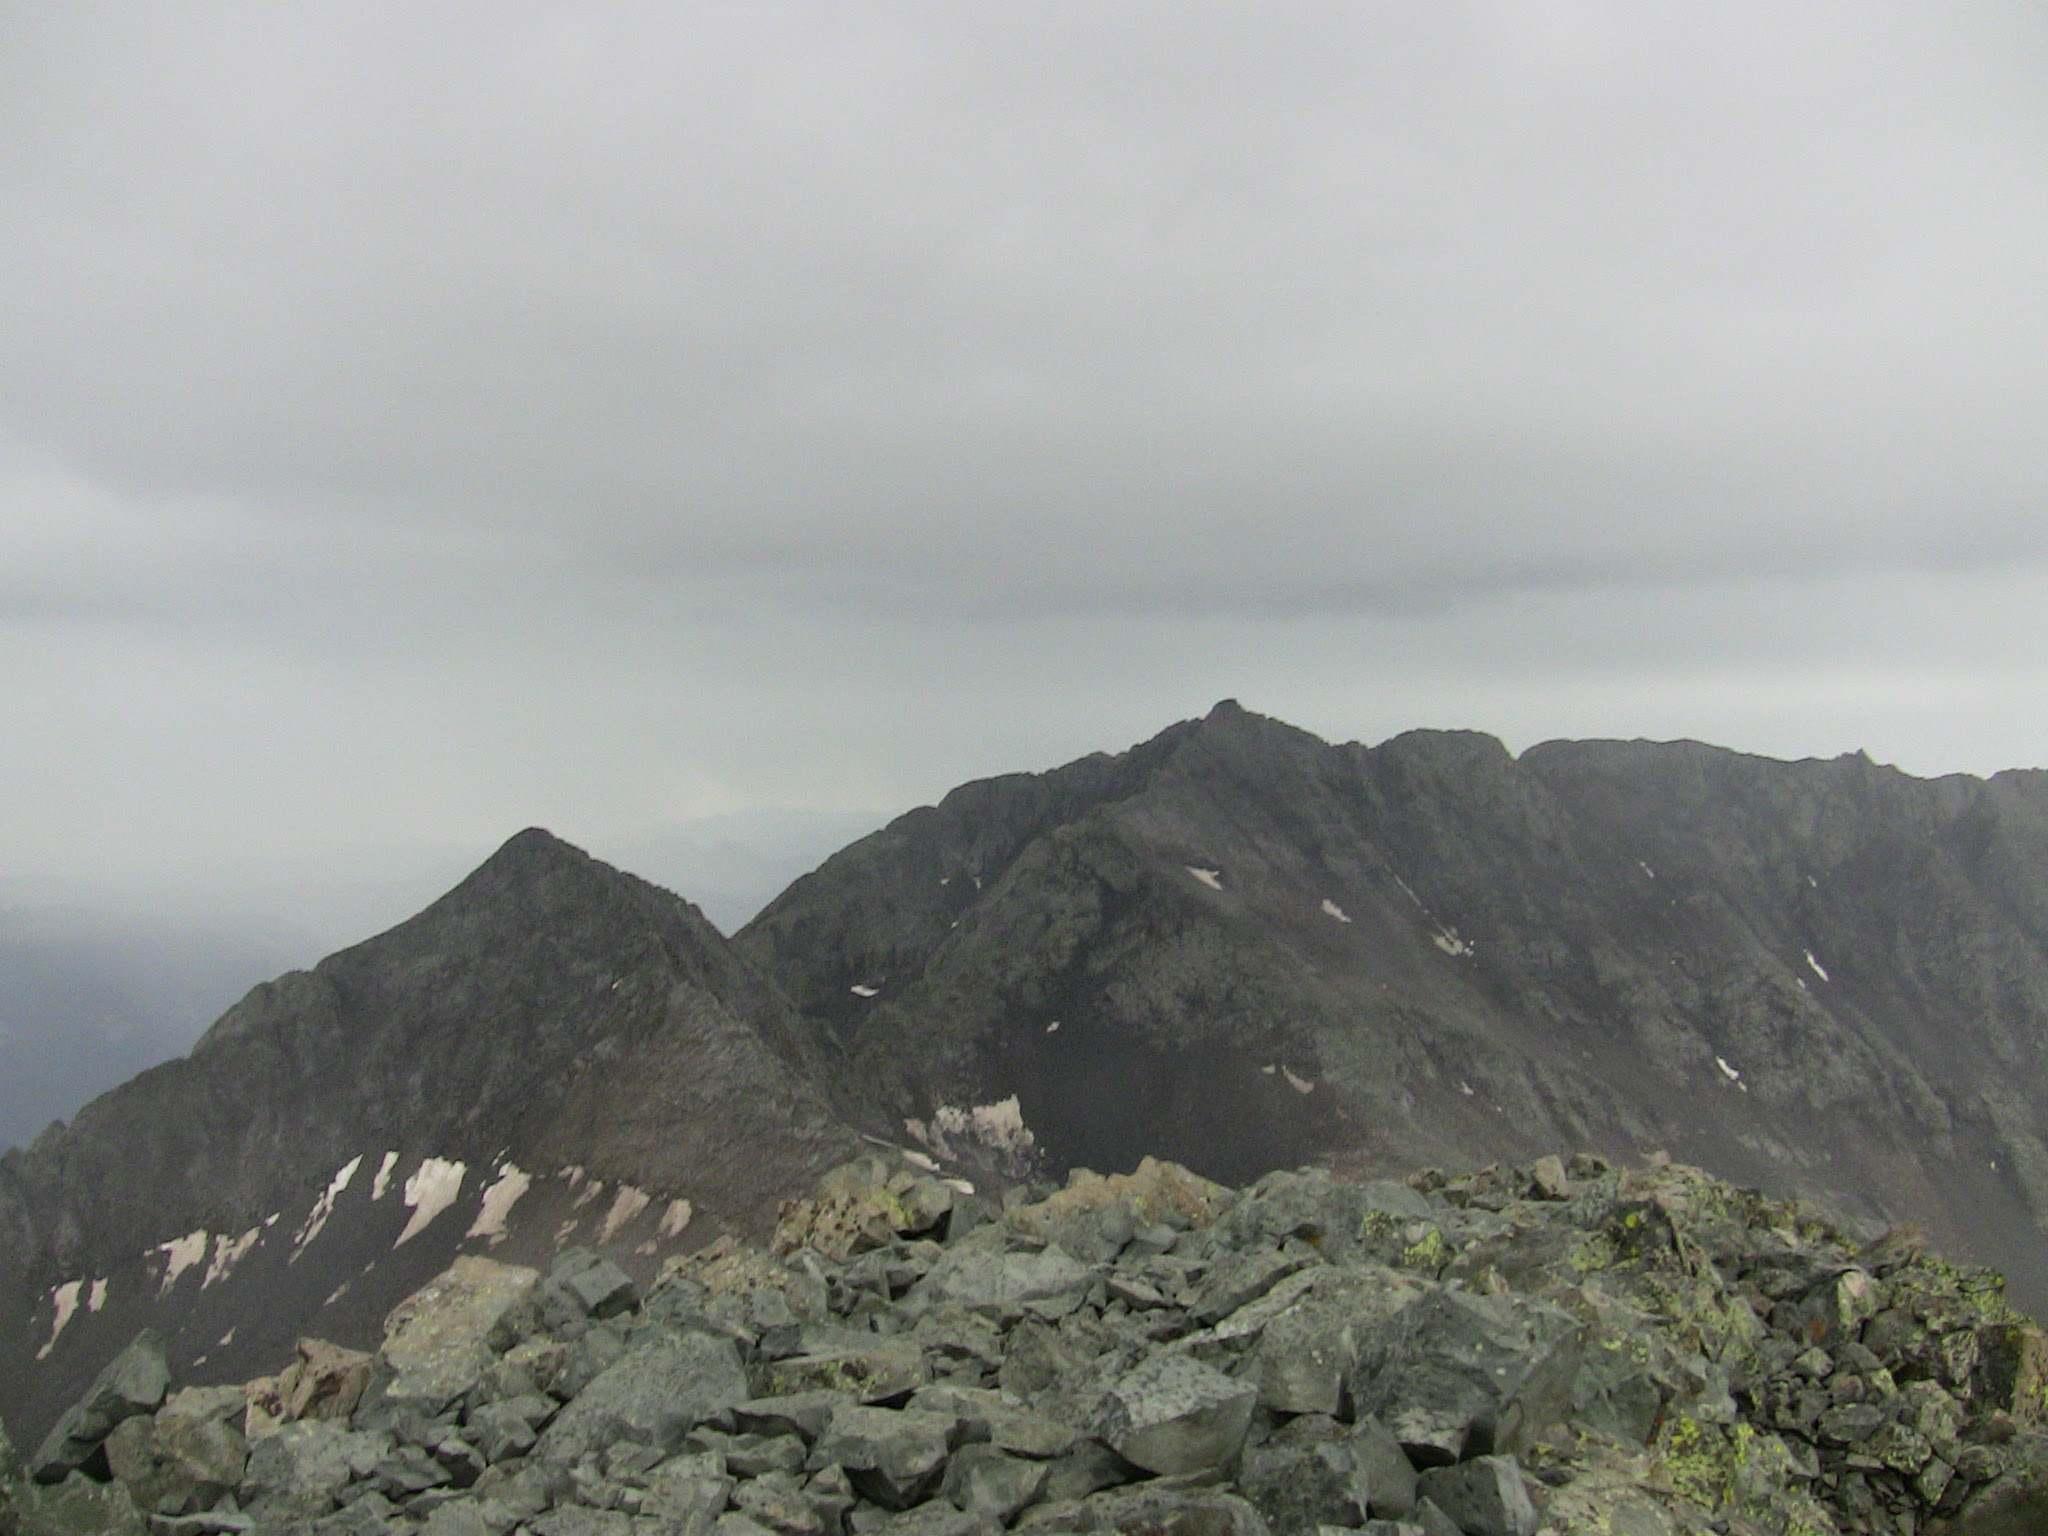 Gladstone Peak and Mount Wilson from the Summit